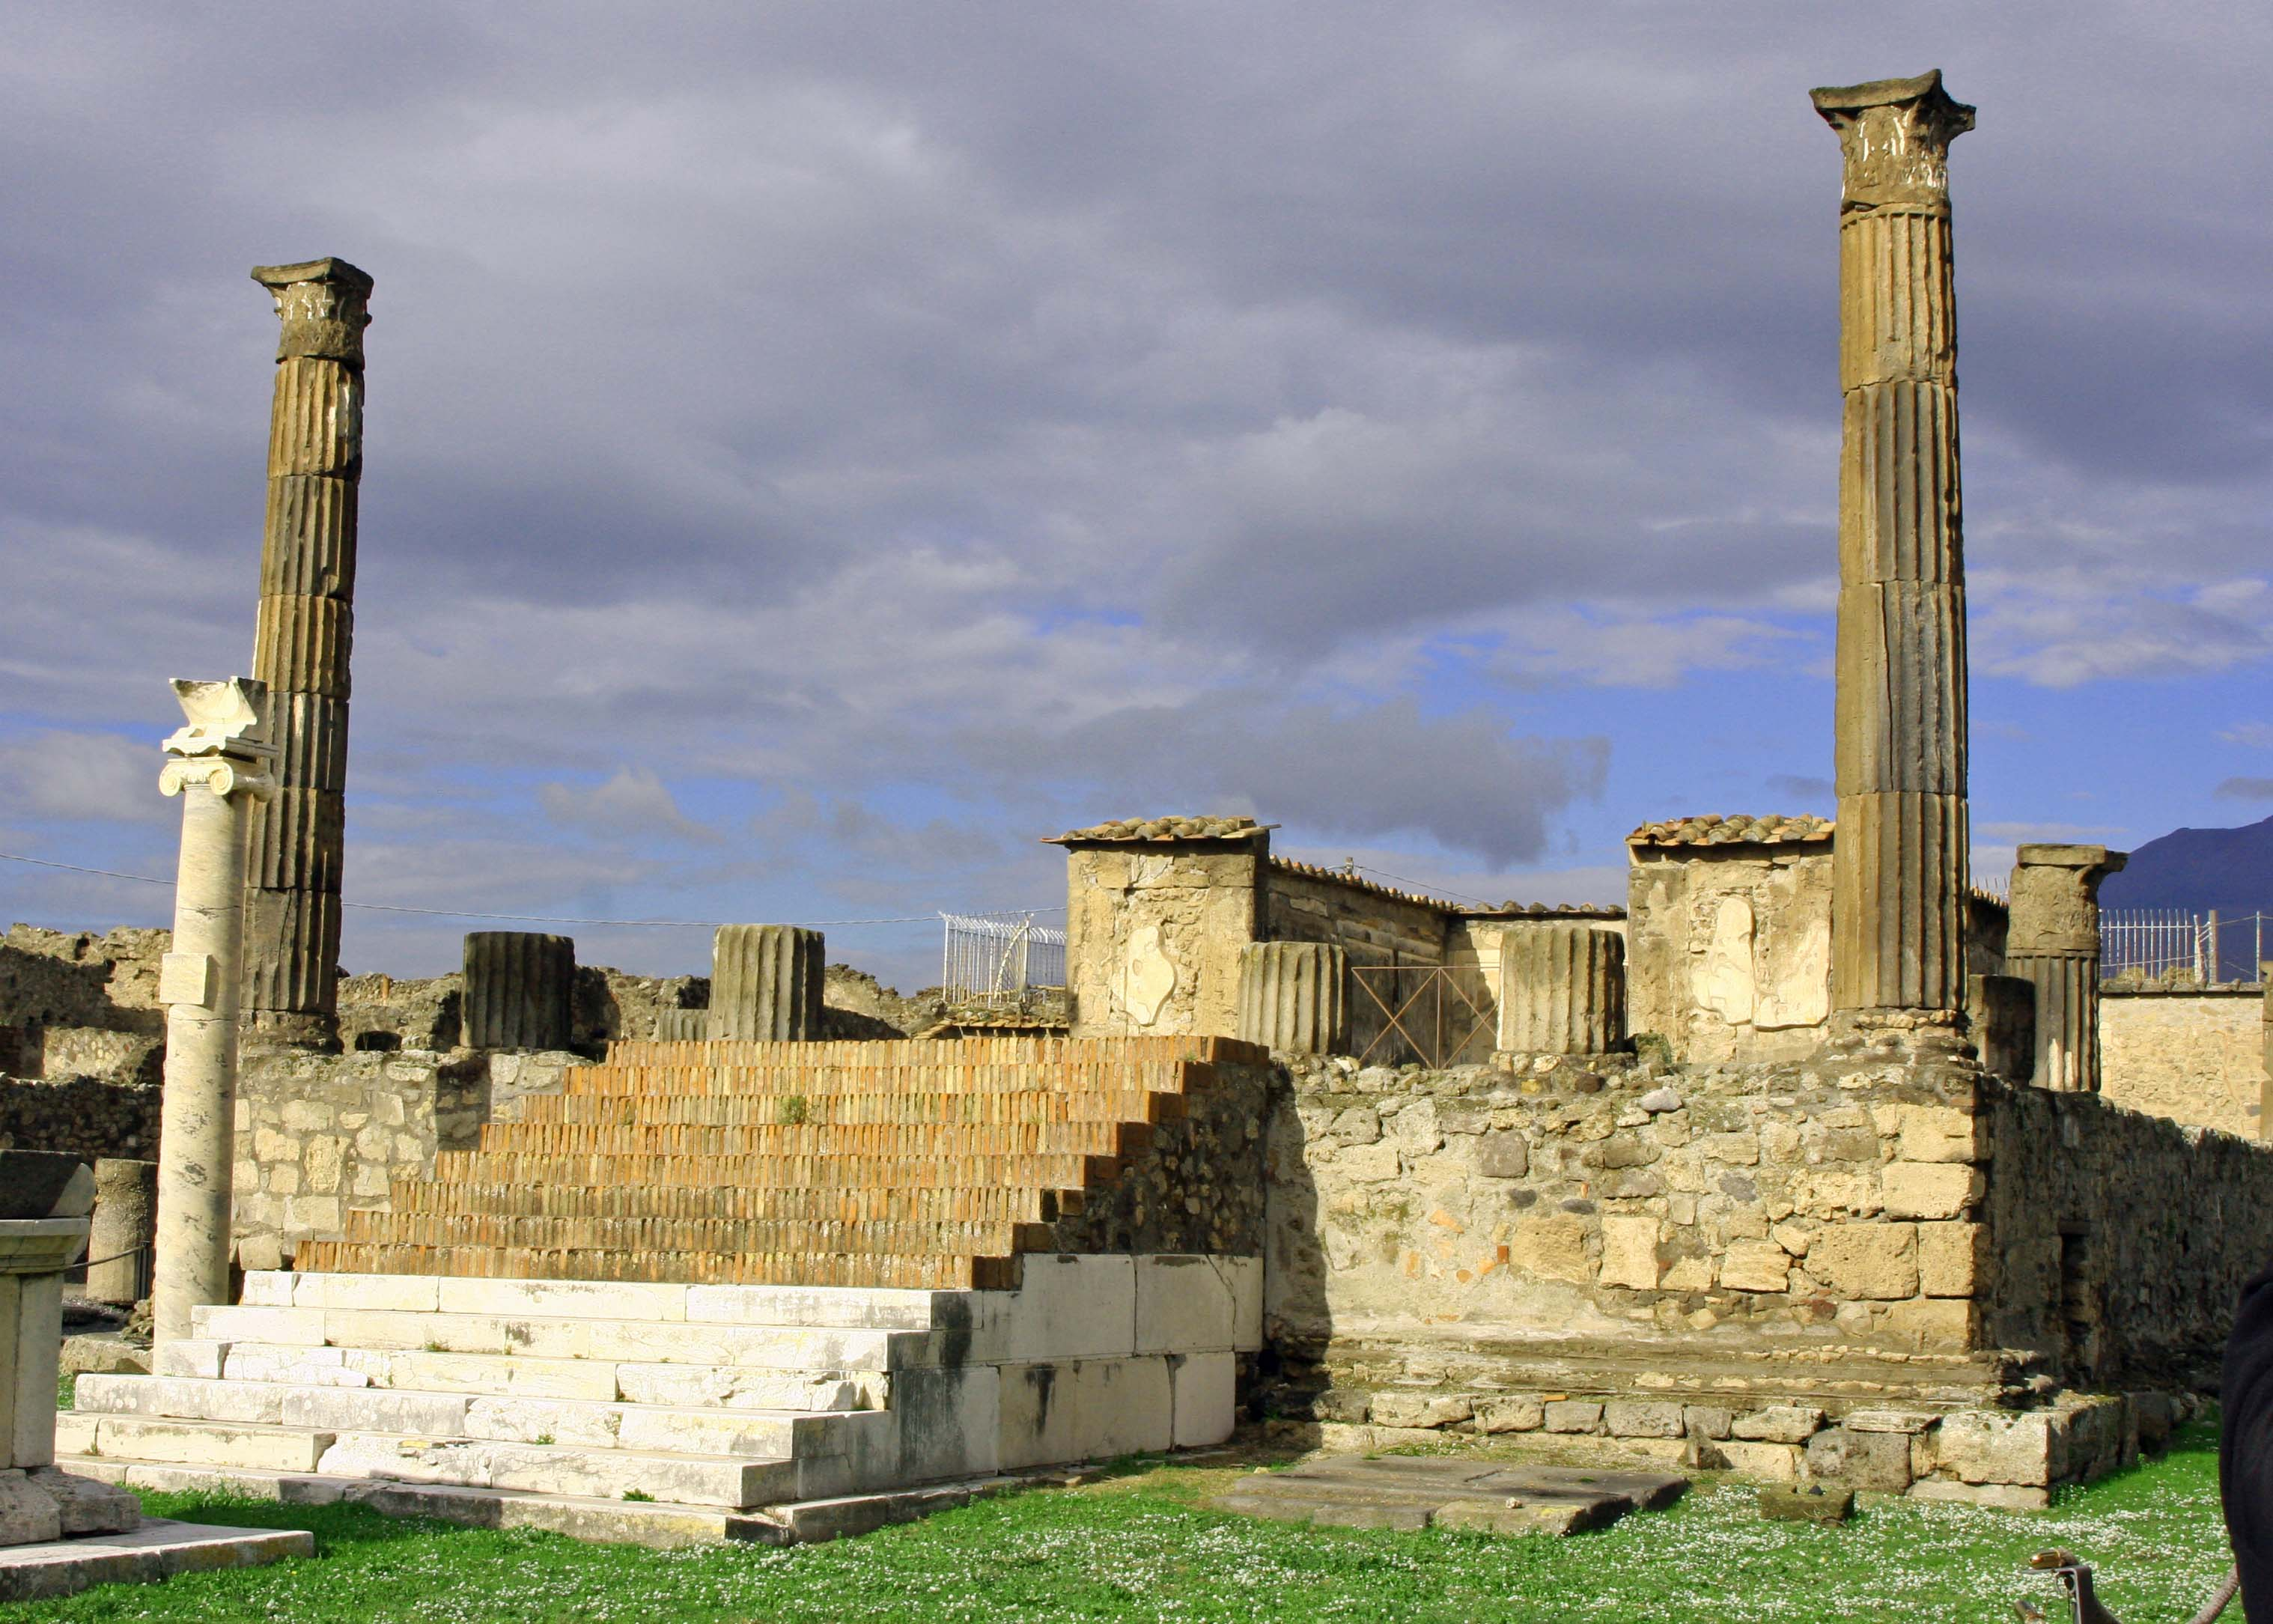 Dark clouds hover above Apollo's Temple caught in the sunlight. (Photo by Peggy Mekemson.)